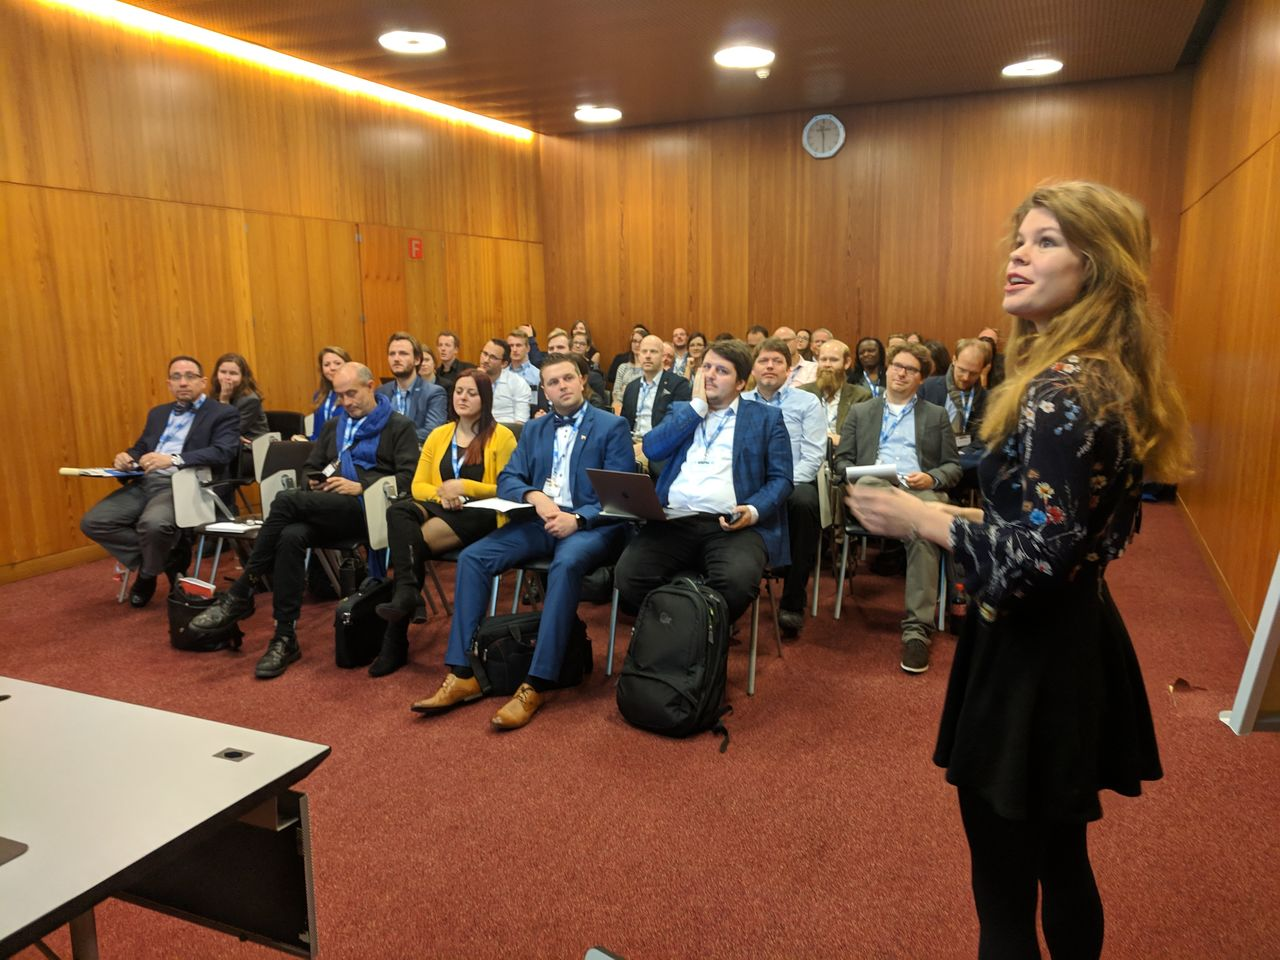 HumTechLab at HNPW 2019!